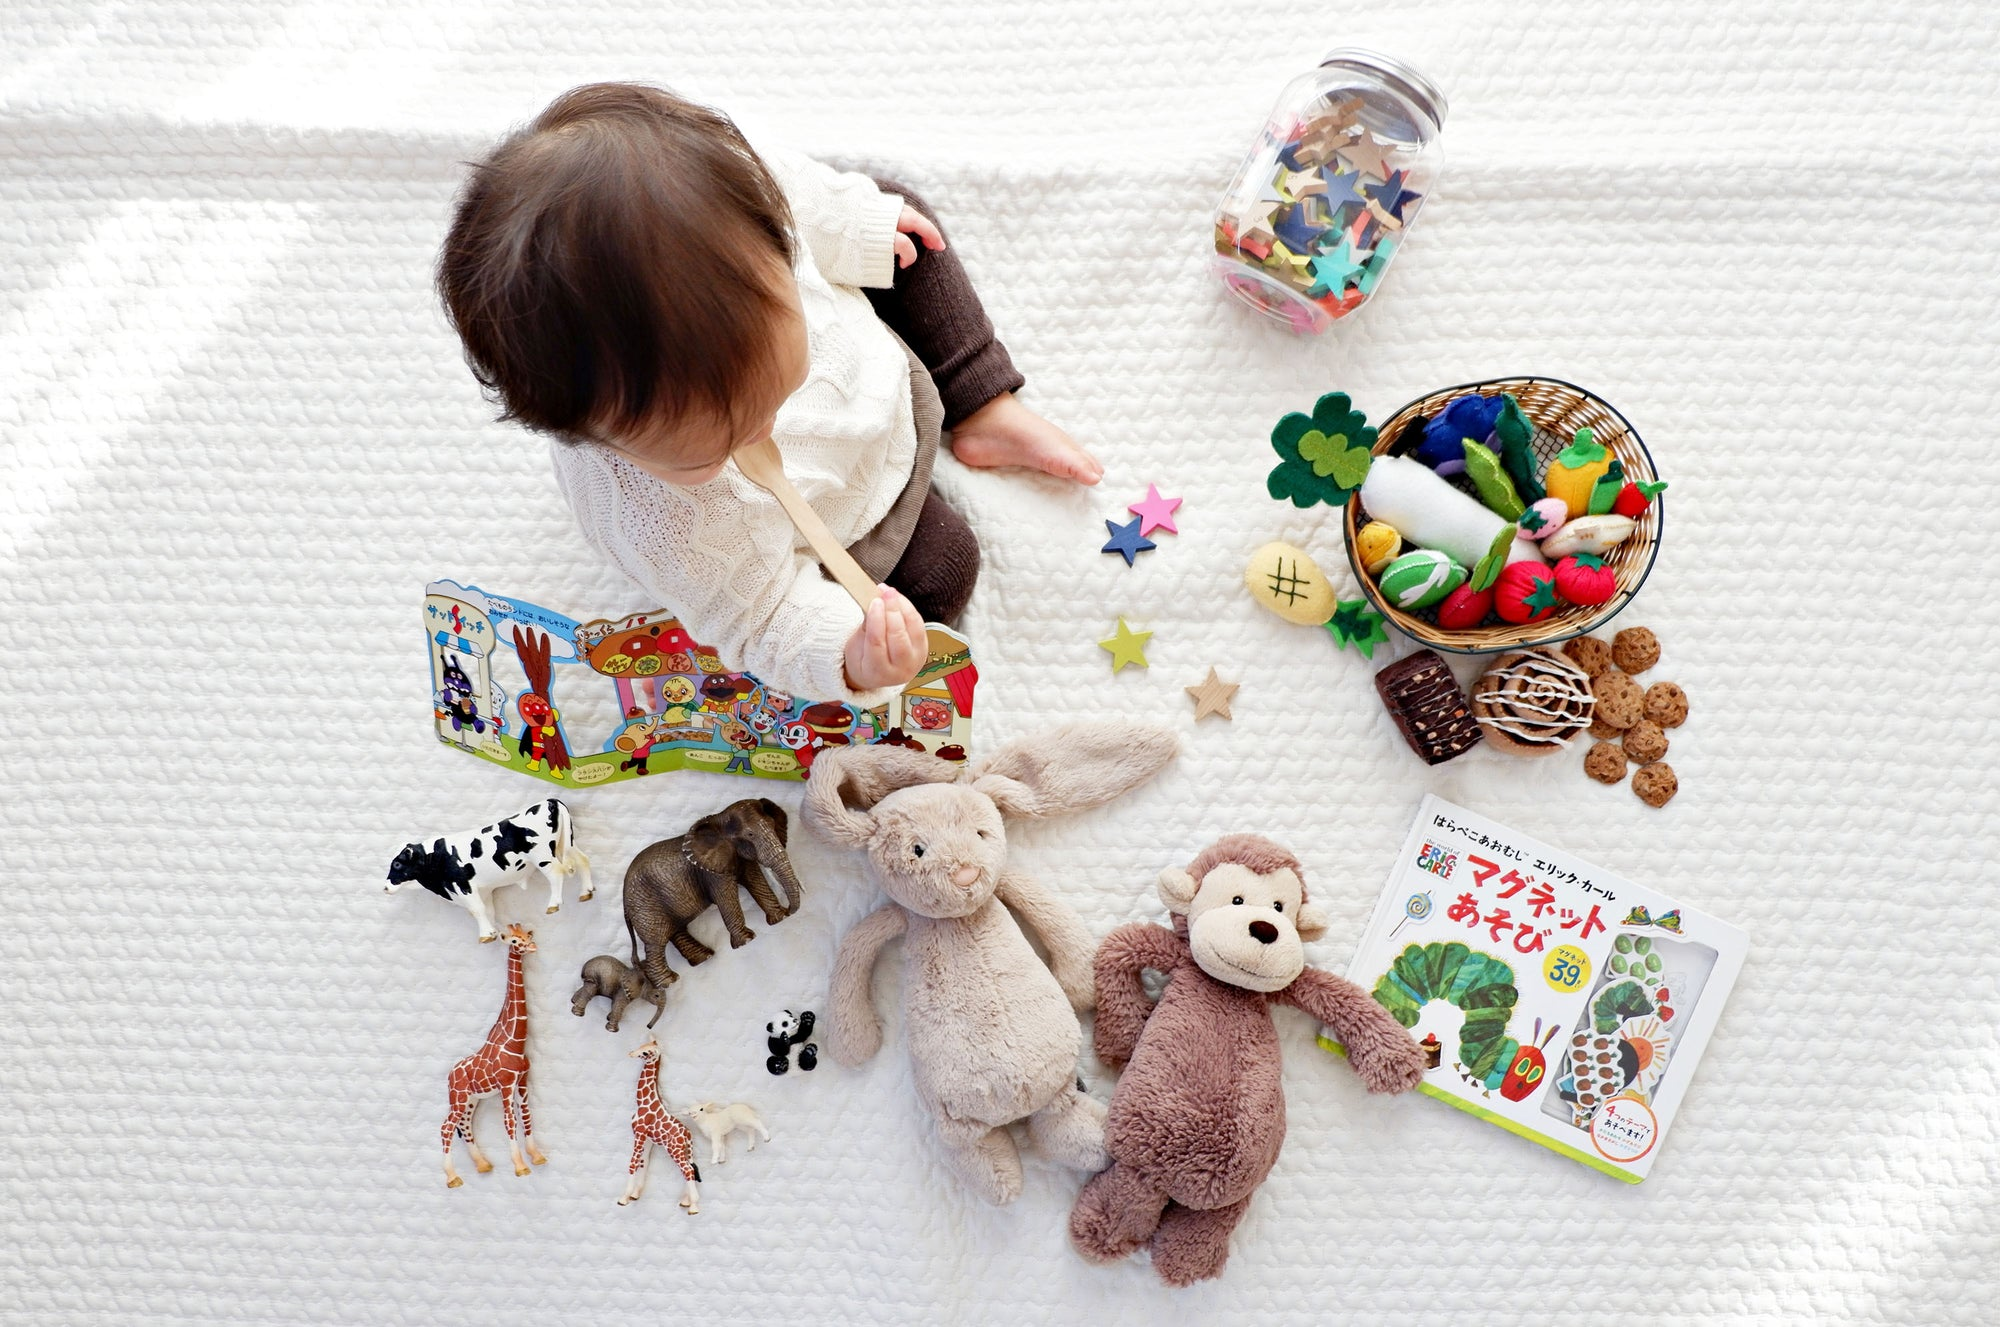 Surprising Ways In Which Toys Help Kids Learn